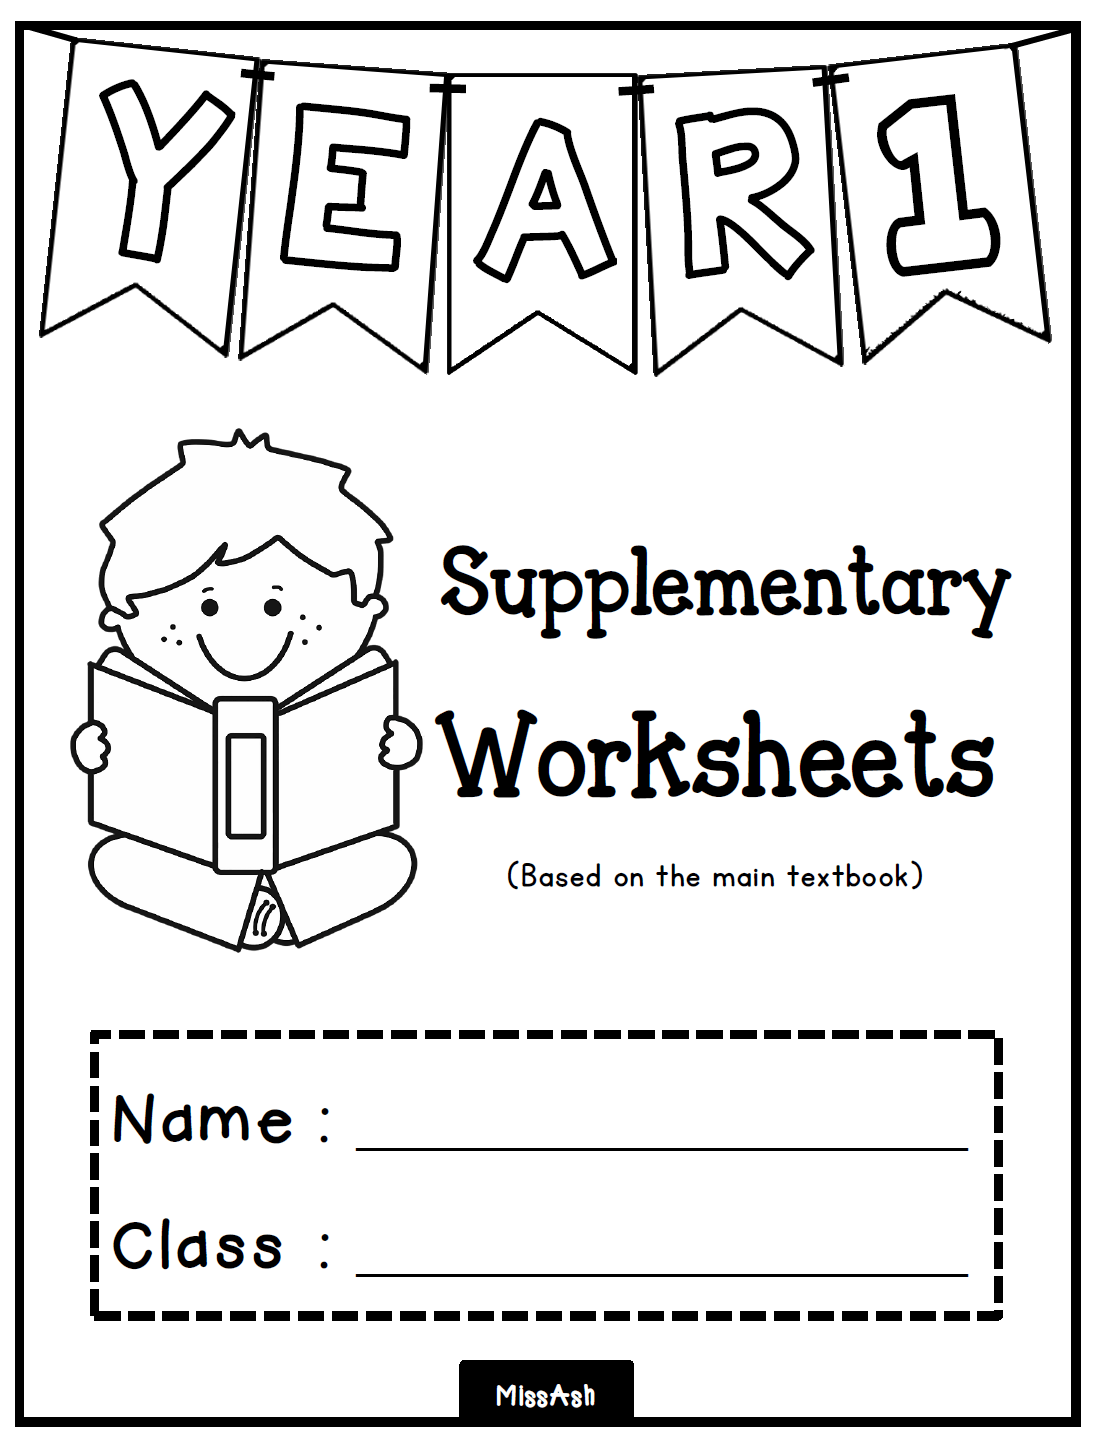 Worksheets For Year 1